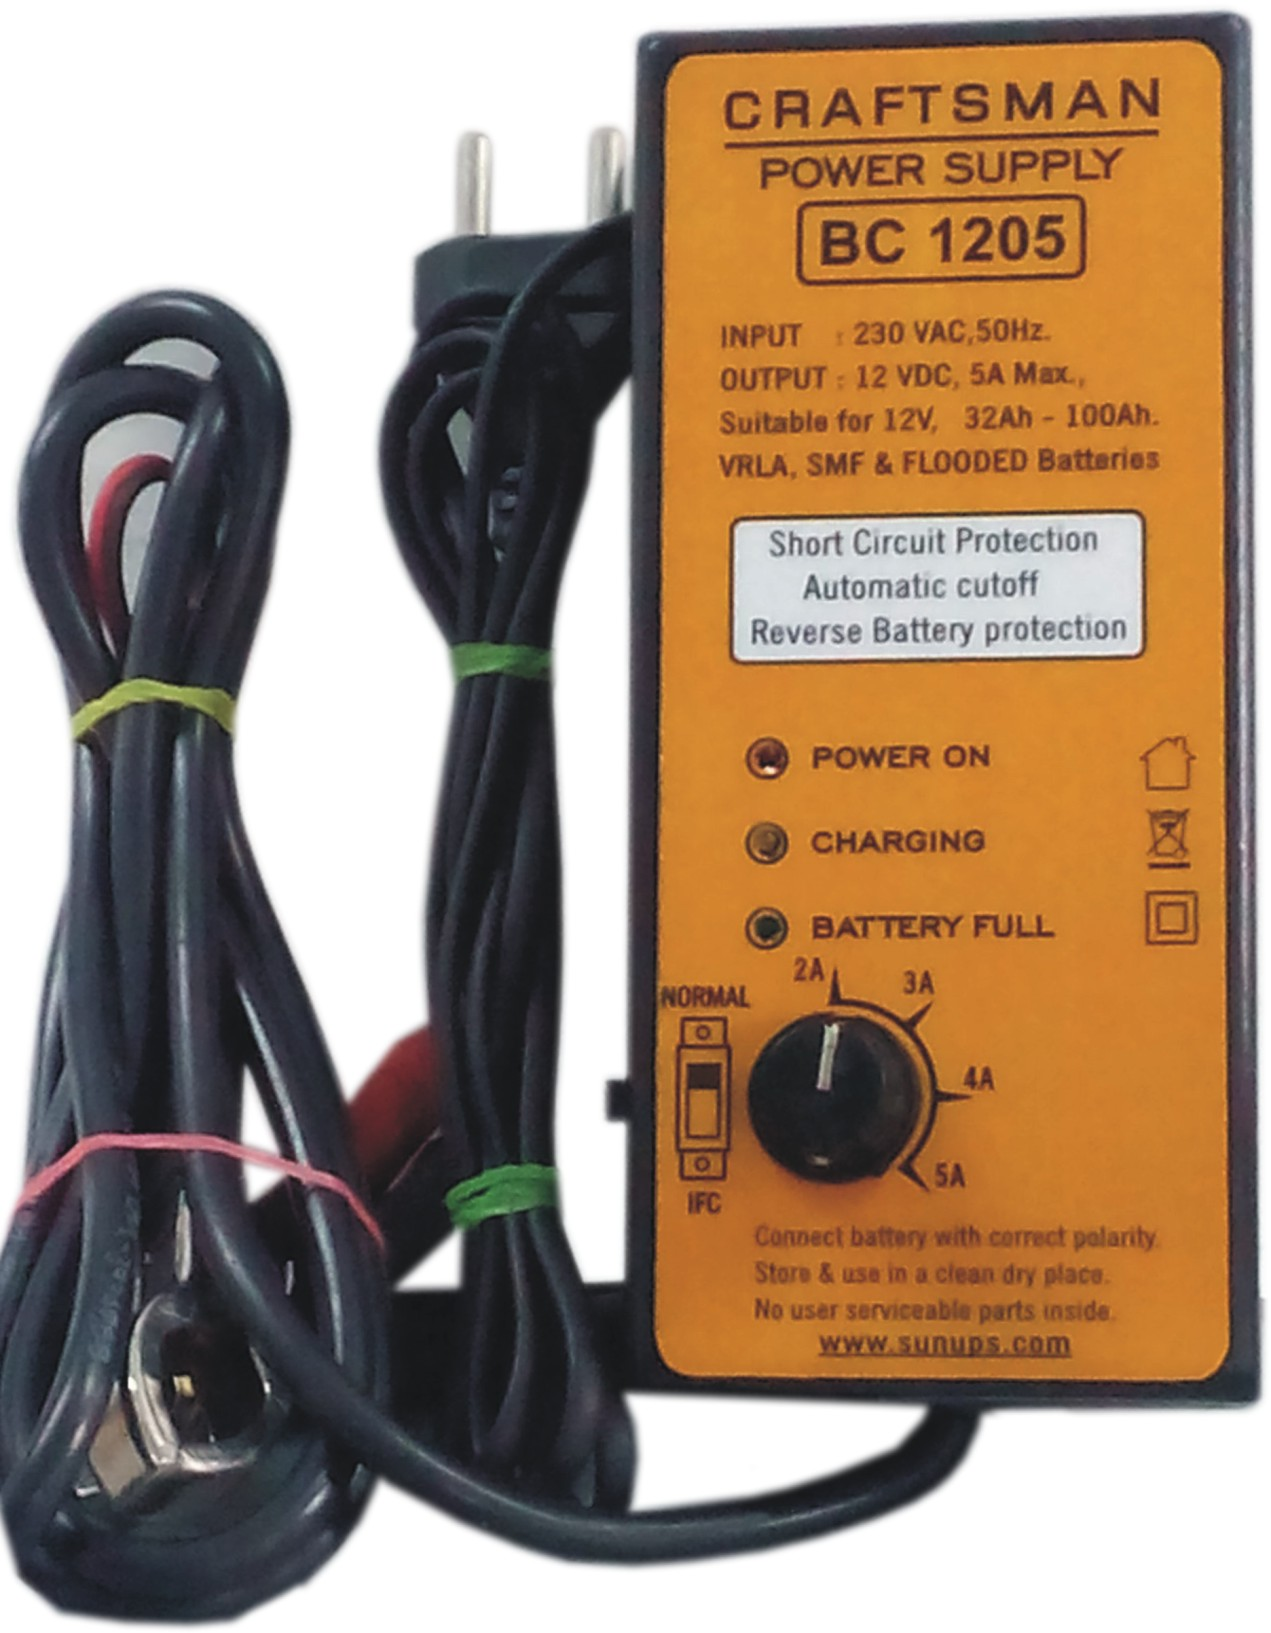 Smps Battery Charger 12v 24v 36v 48v 60w Craftsmans Electric Short Circuit Protection To Your Power Supply S